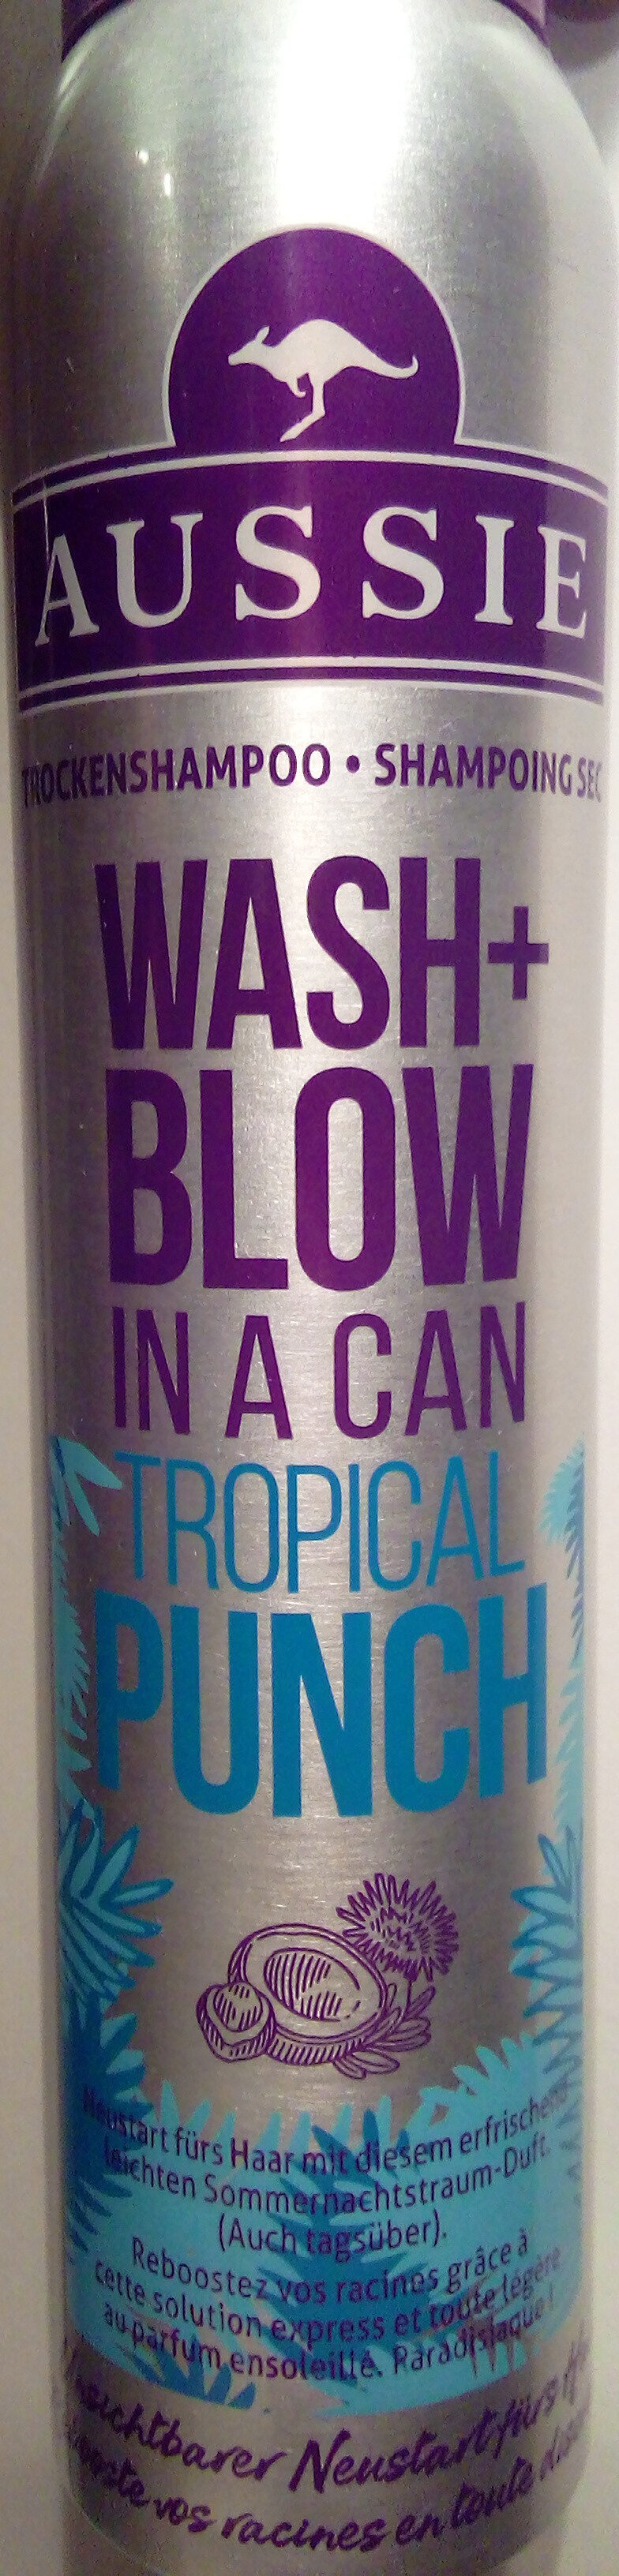 Wash+Blow in a can tropical punch - Product